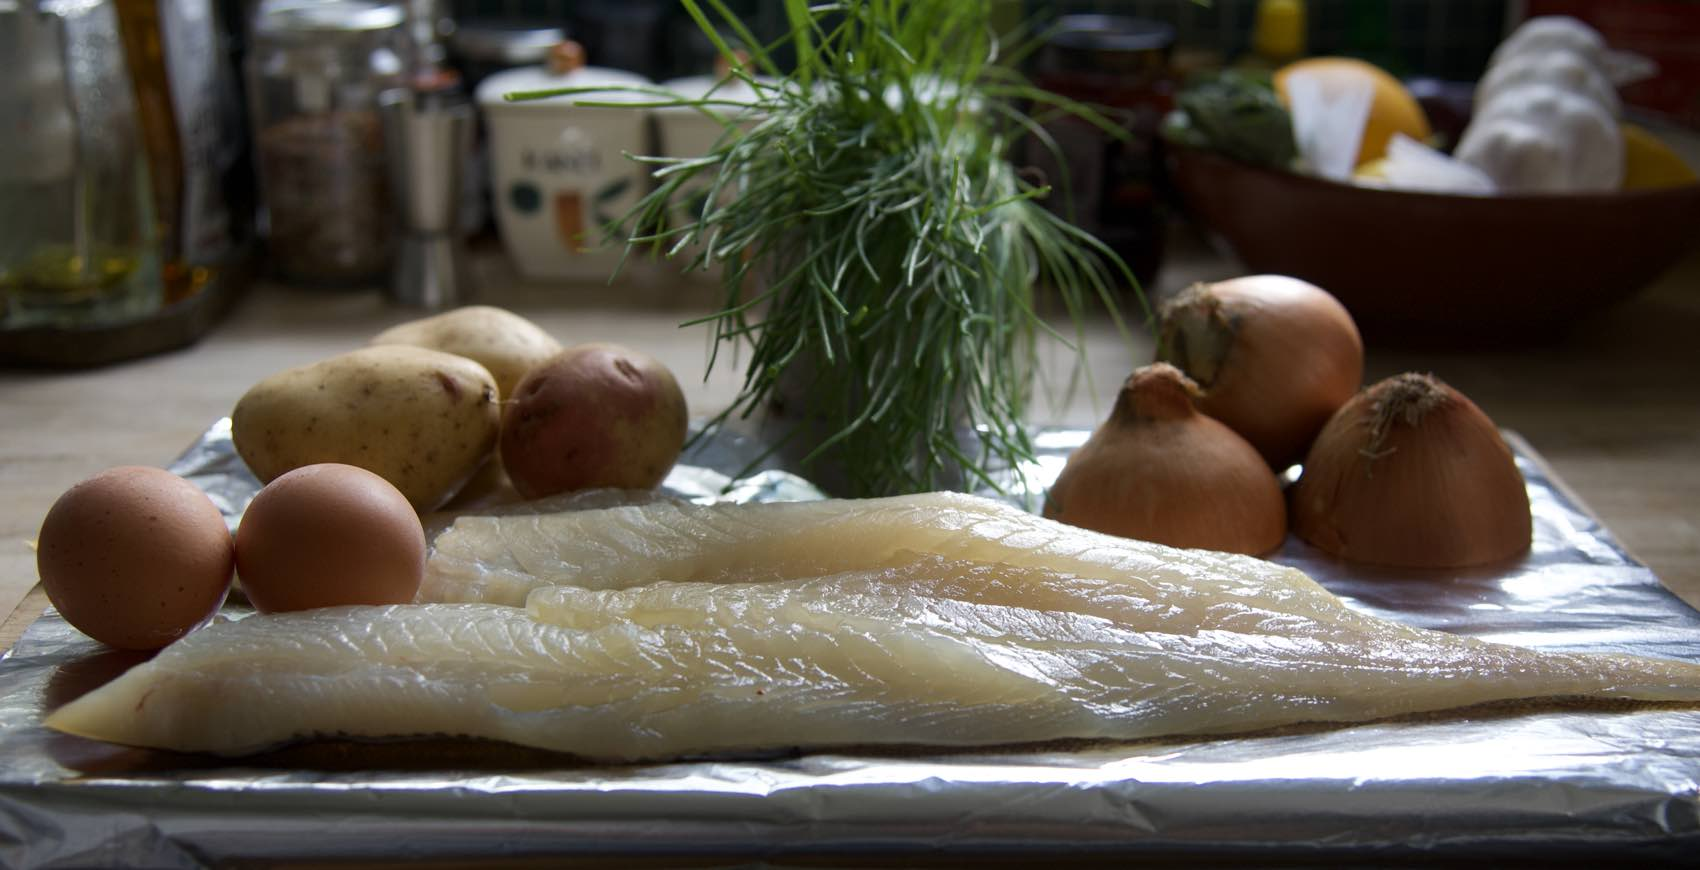 Three for Cullen Skink: Potatoes, onions and smoked haddock